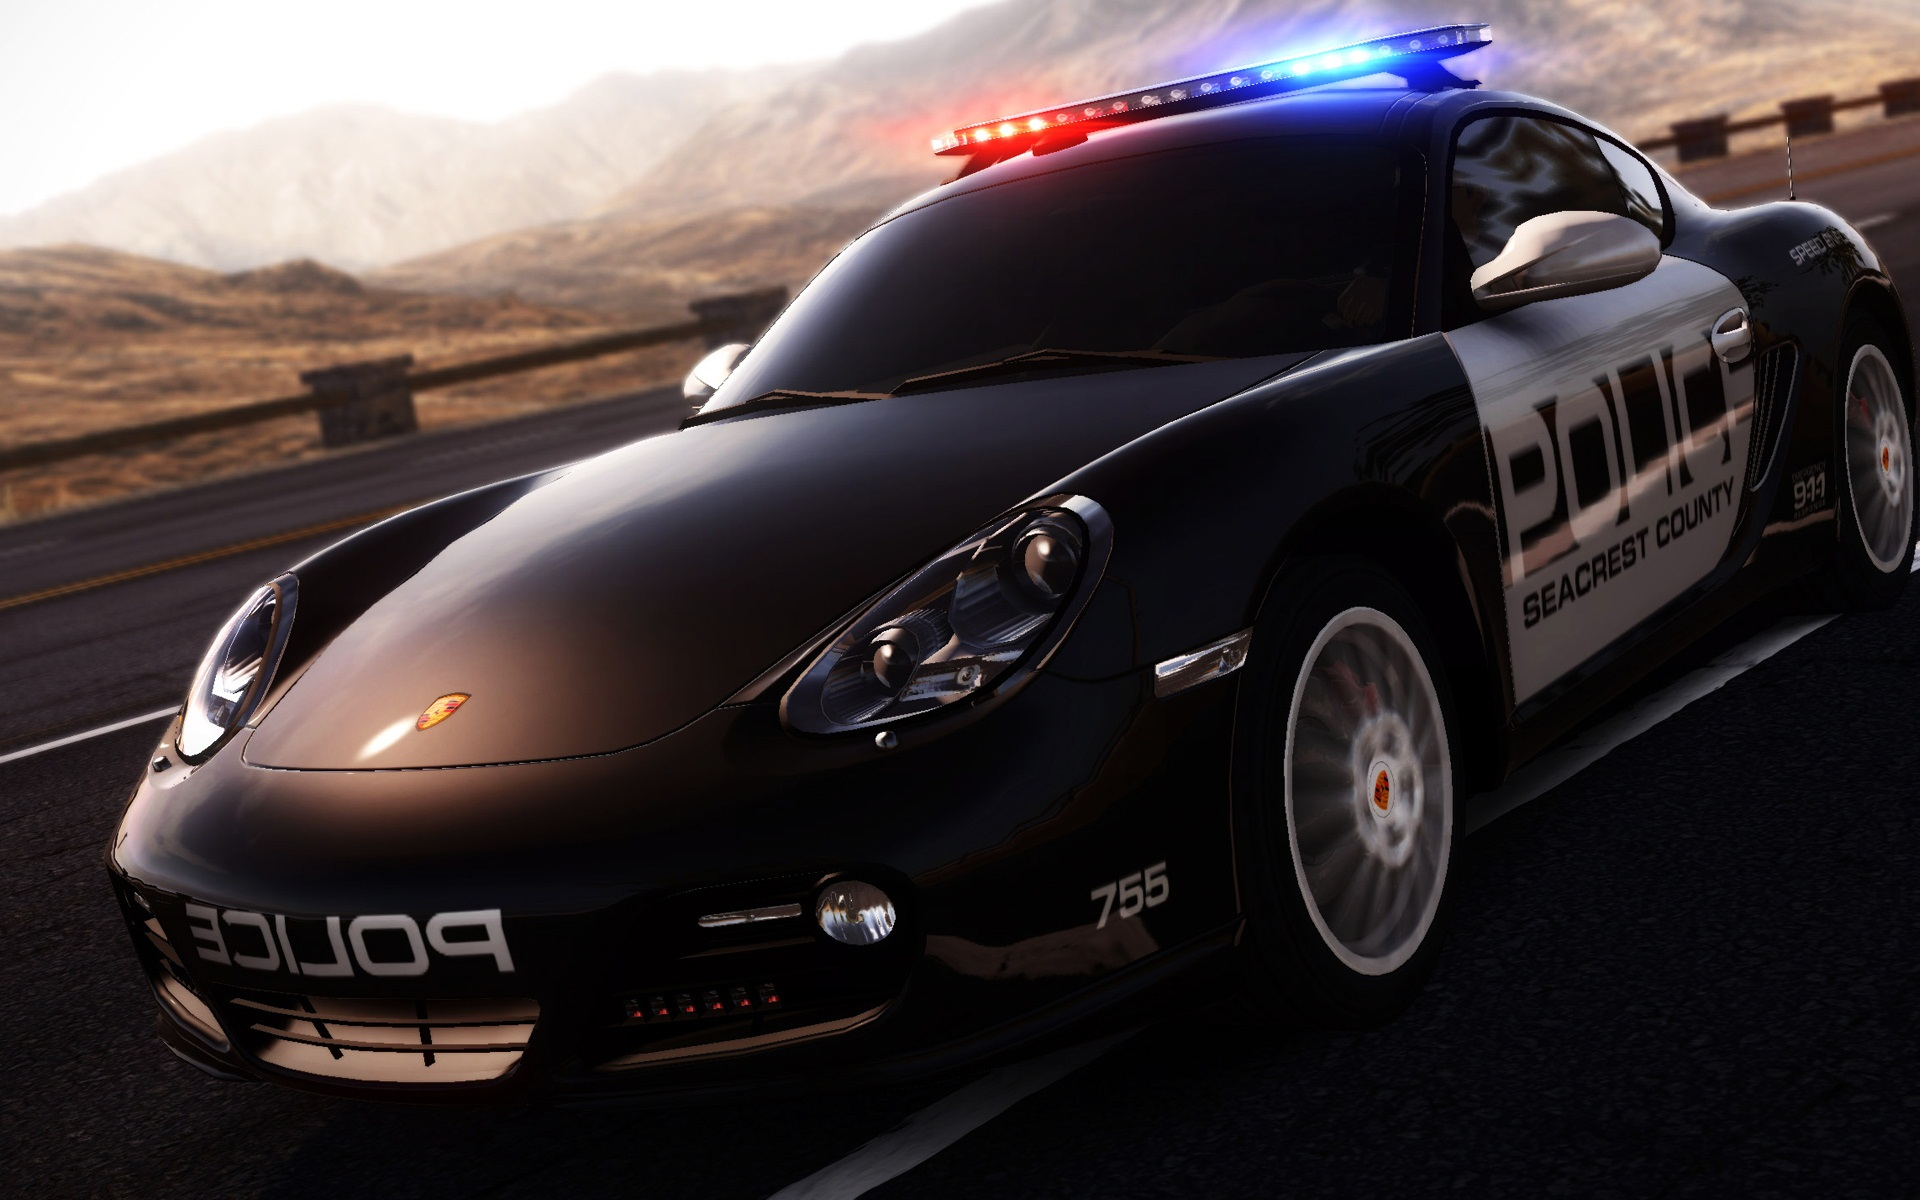 Porsche Cayman in NFS Hot Pursuit